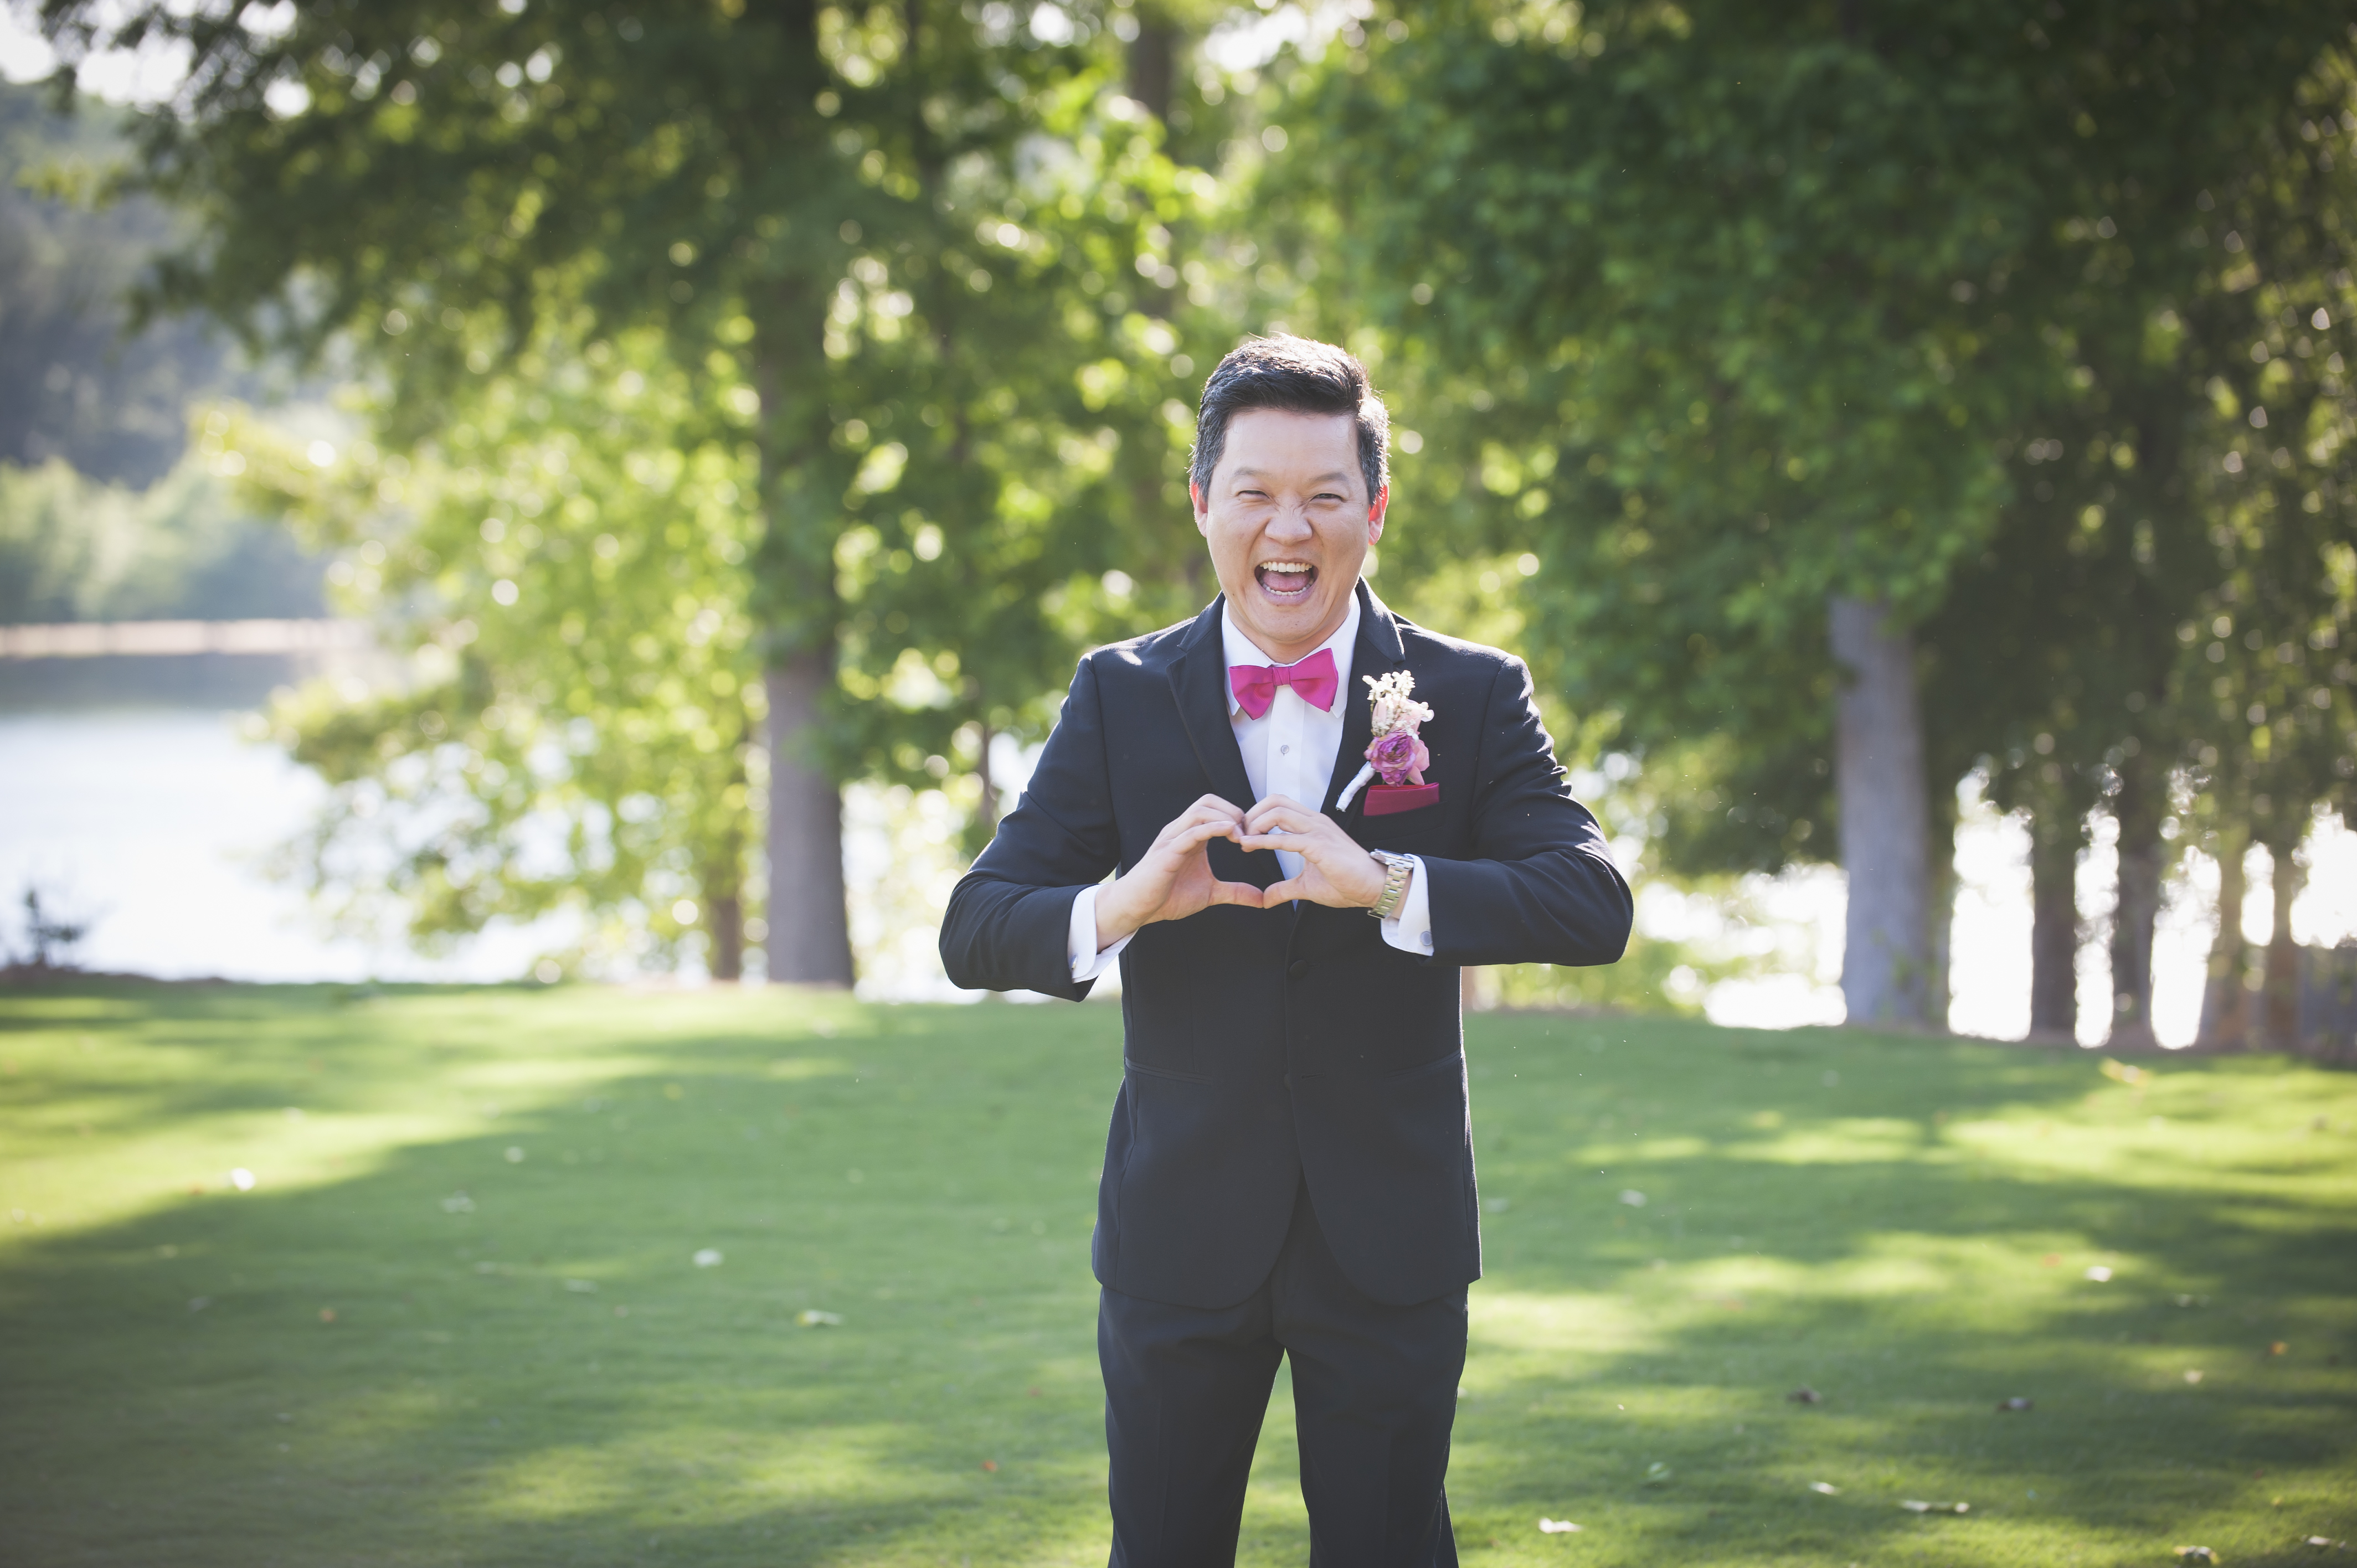 perfect wedding - fun pic of groom